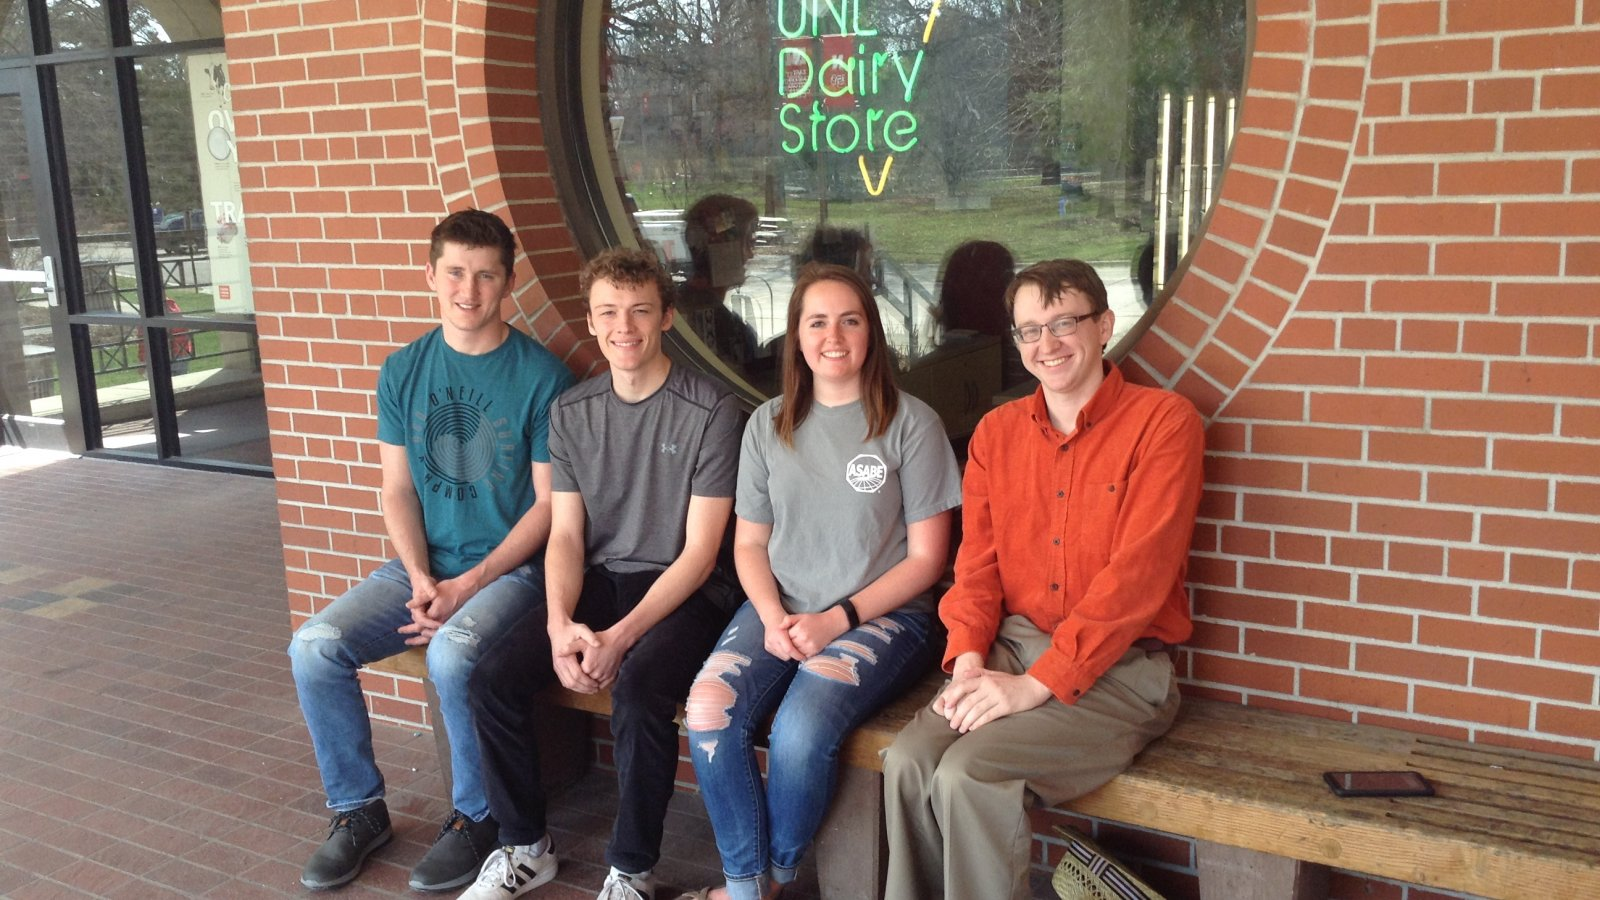 Dairy Plant Relocation team (from left) is Luke Burbach, Justin Brinkman, Meredith Johnson and Loren Steinman.